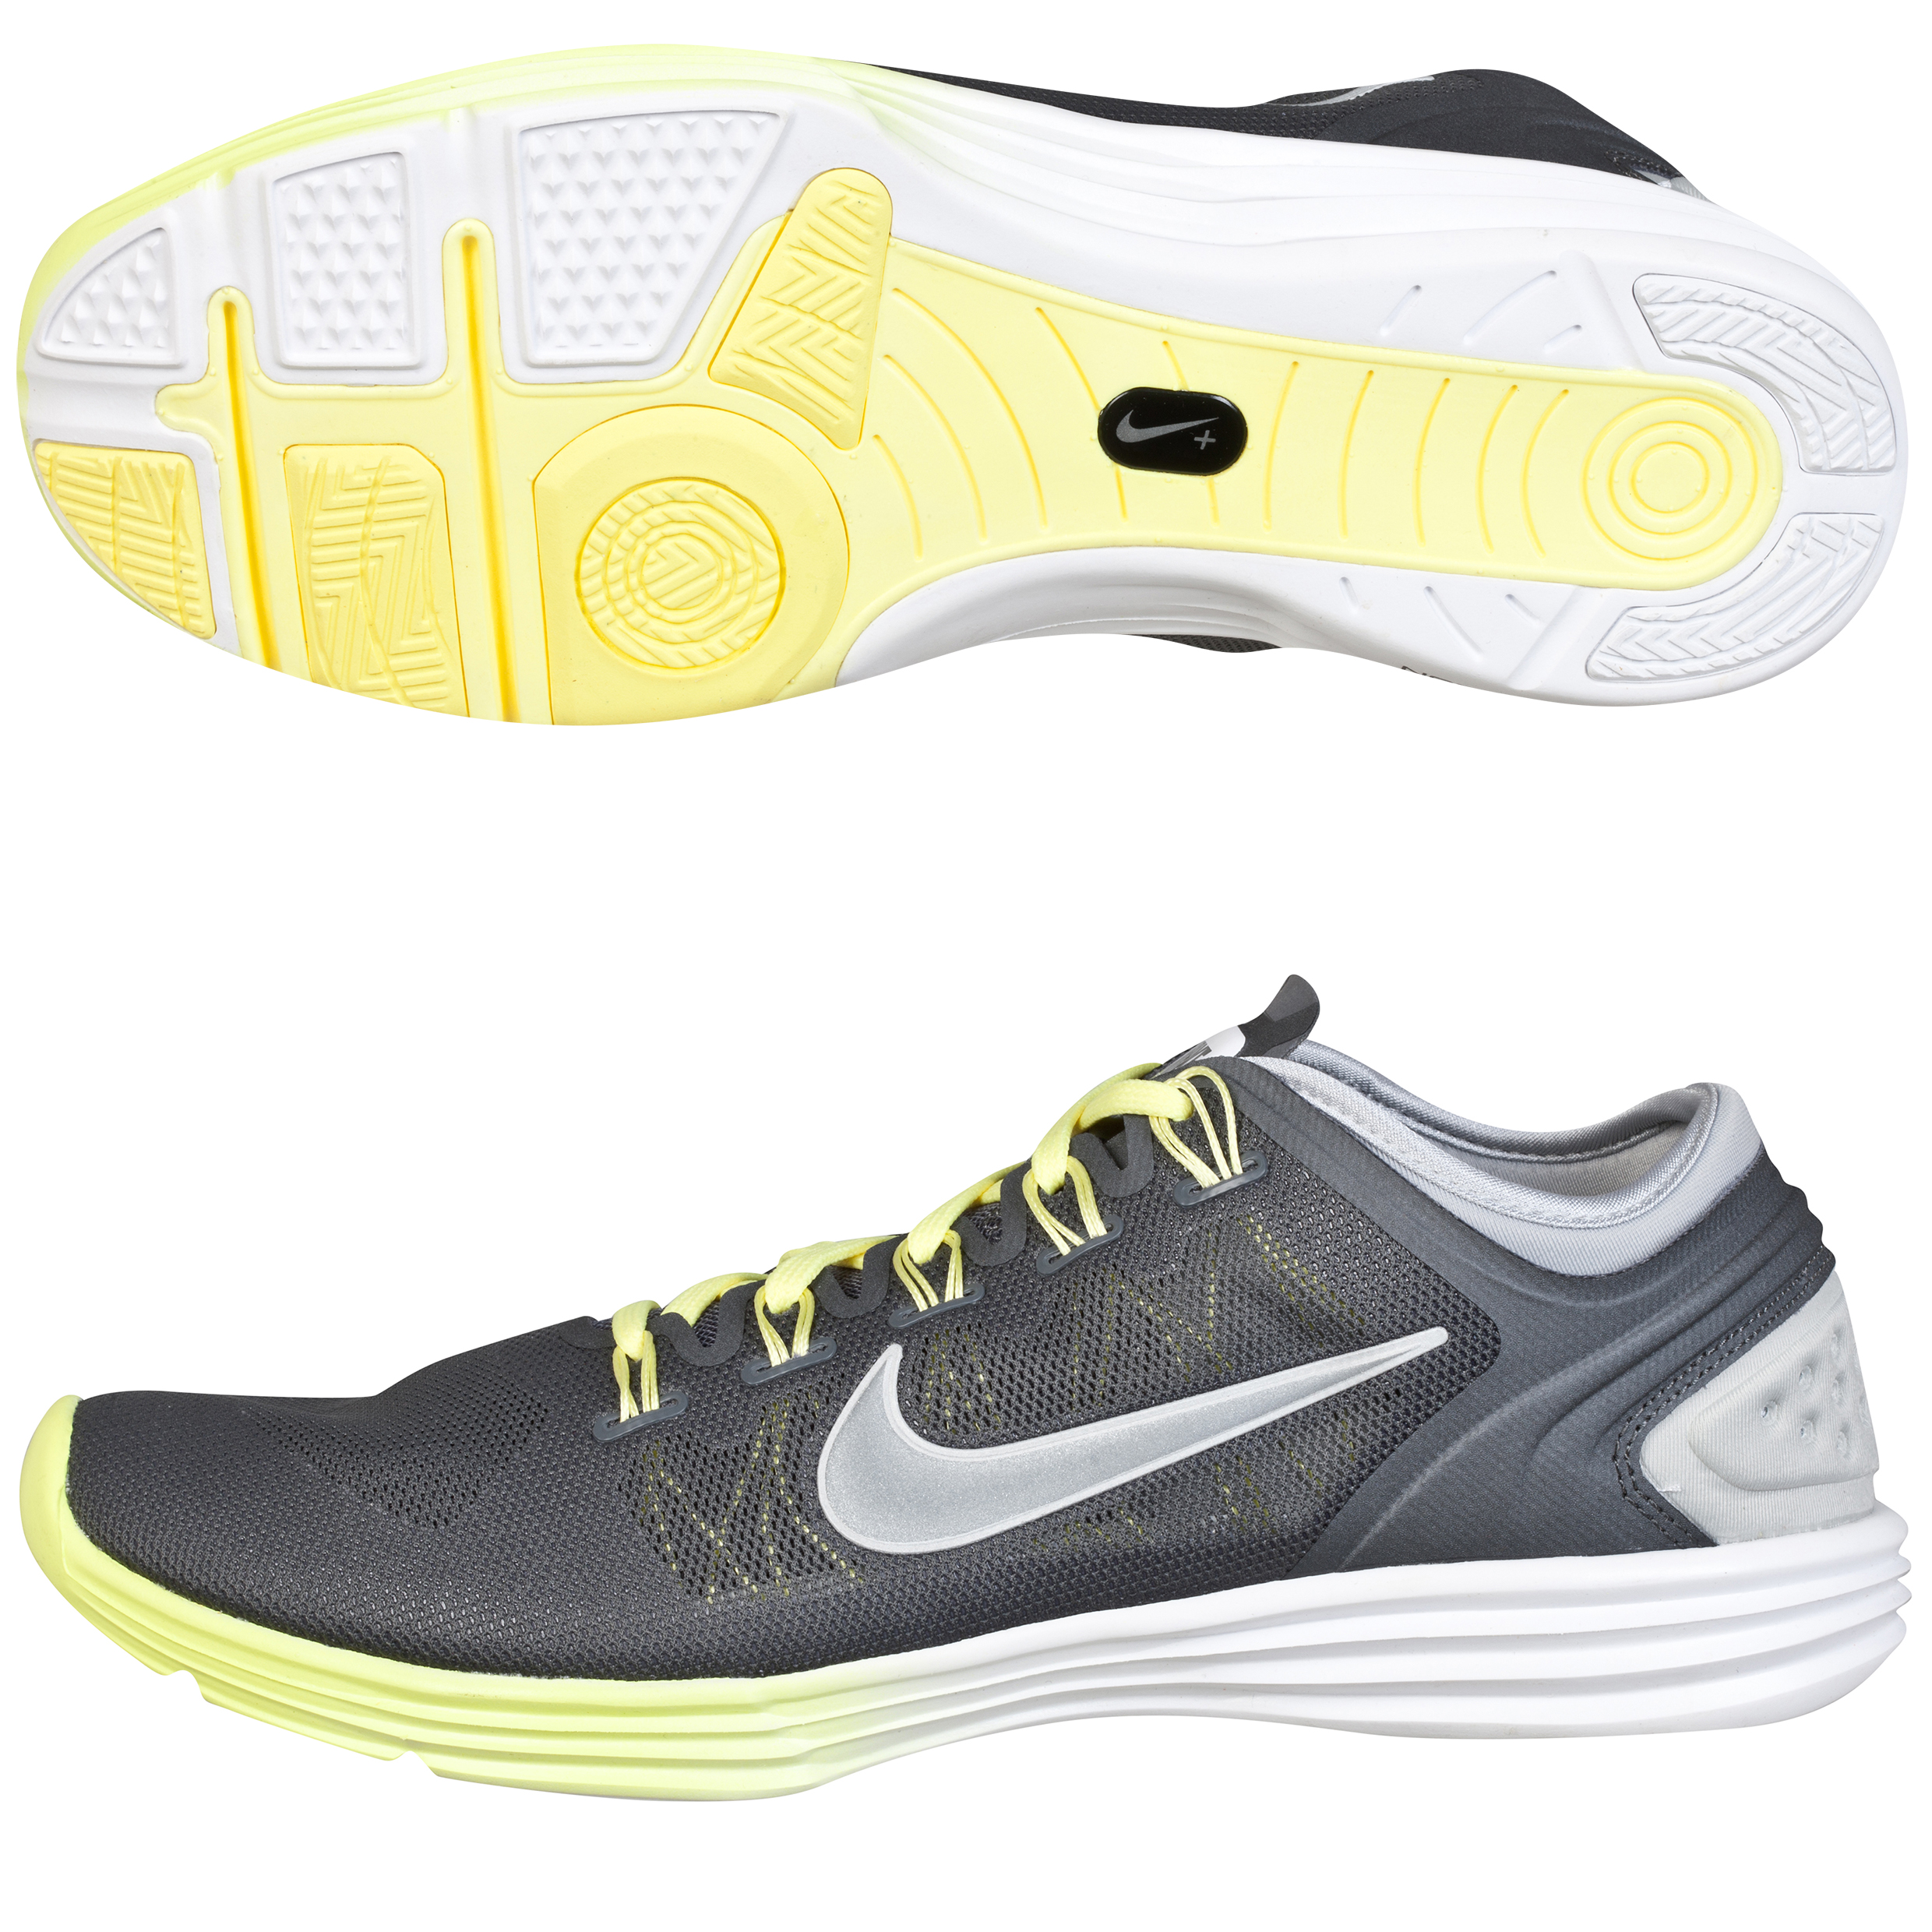 Nike Lunarhyperworkout Xt+ - Grey/Metallic Silver-Electric Yellow - Womens